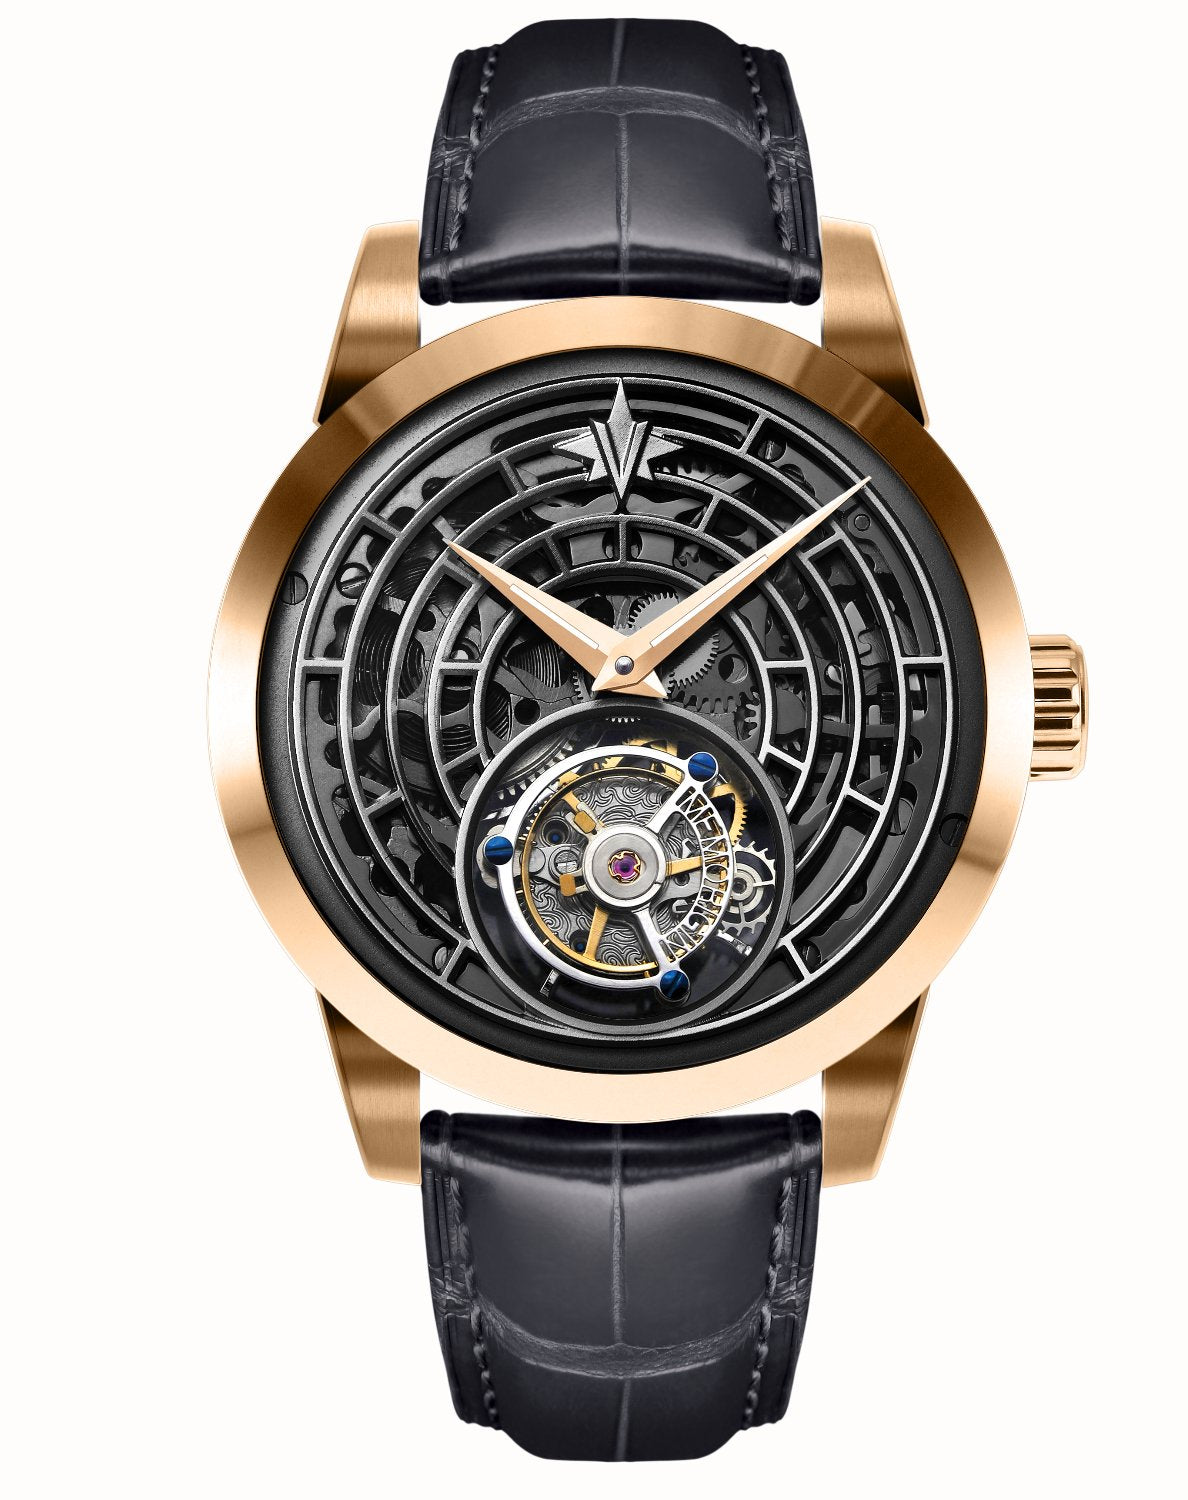 Memorigin Watch Tourbillon Windows of Life Series Rose Black Bracelet